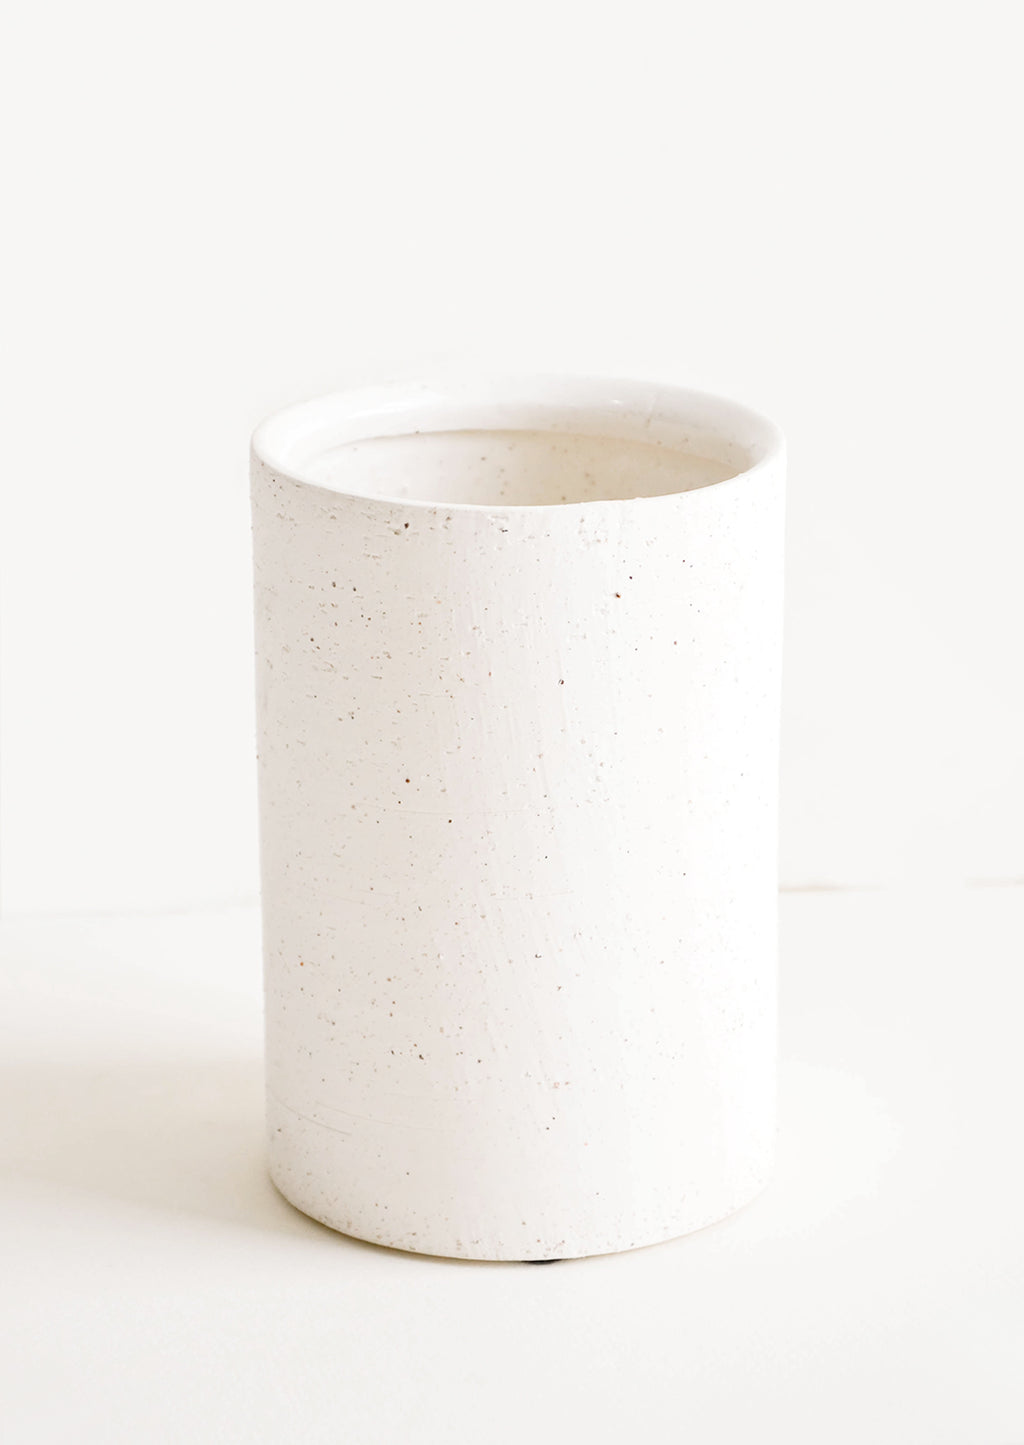 Wide [$28.00]: Vase in short and wide silhouette made from textured, concrete-like material in white